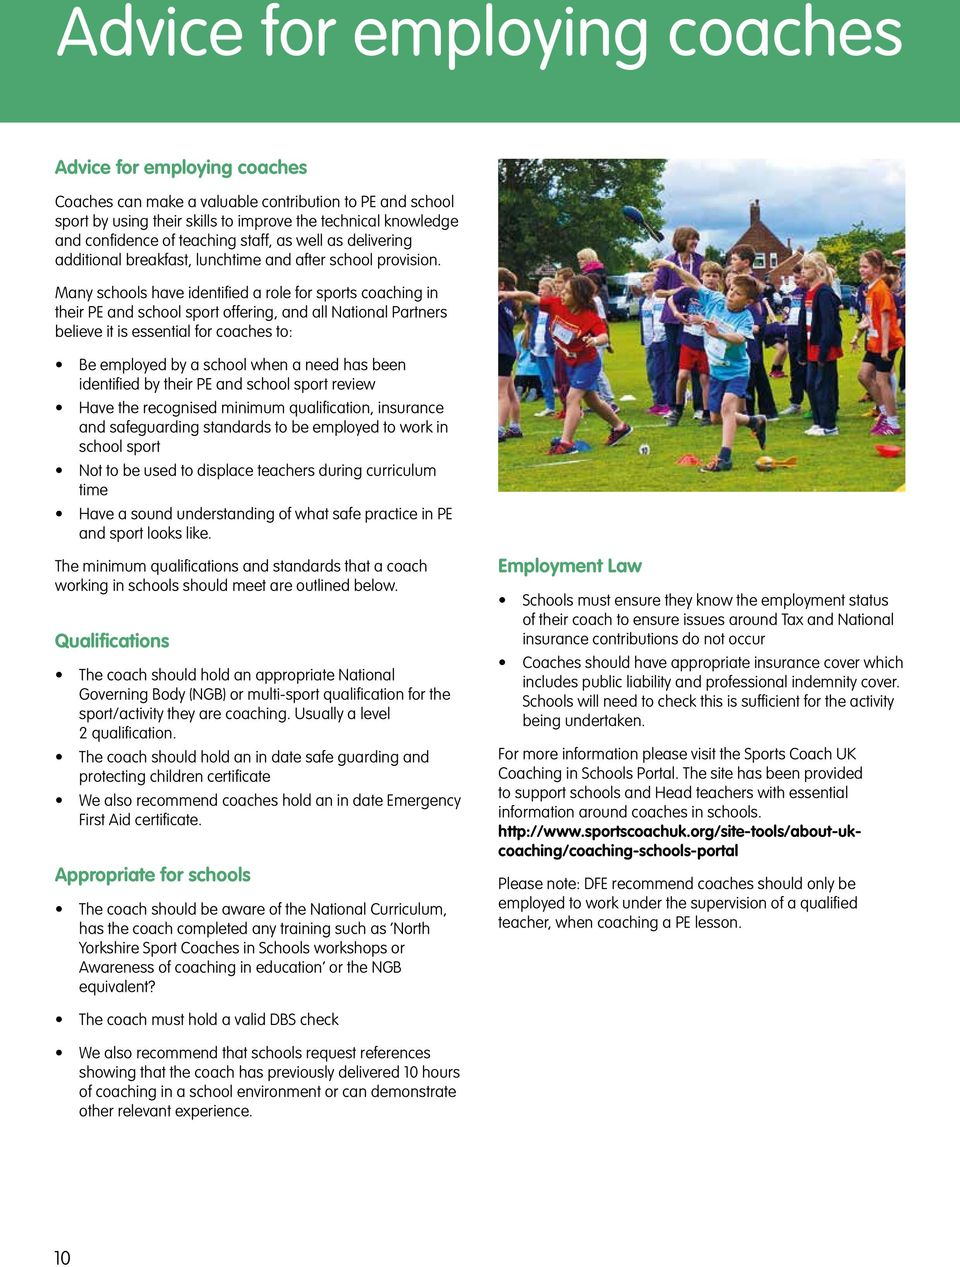 Many schools have identified a role for sports coaching in their PE and school sport offering, and all National Partners believe it is essential for coaches to: Be employed by a school when a need